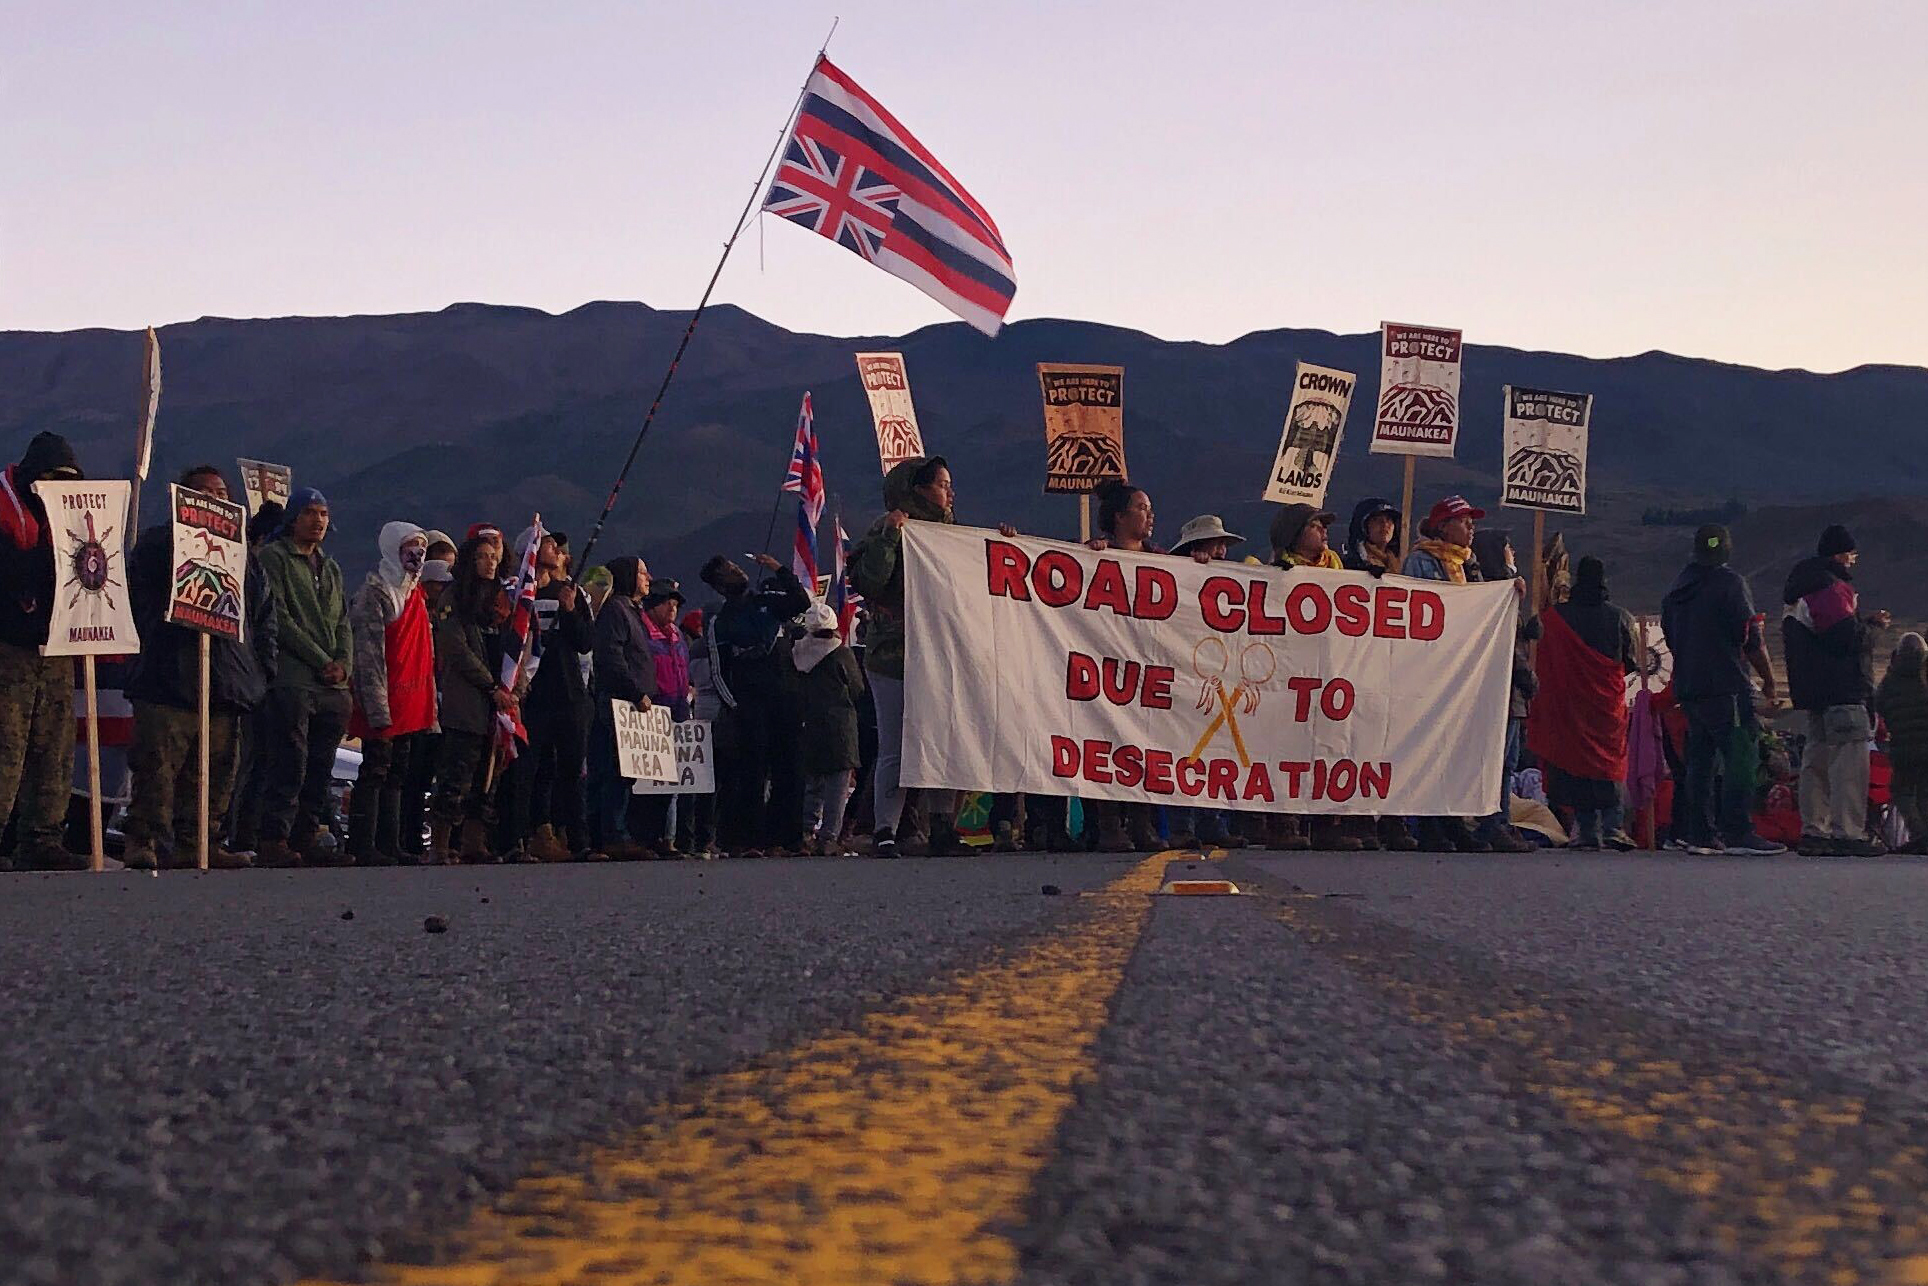 Mauna Kea protests: what's at stake for Native Hawaiians - Vox